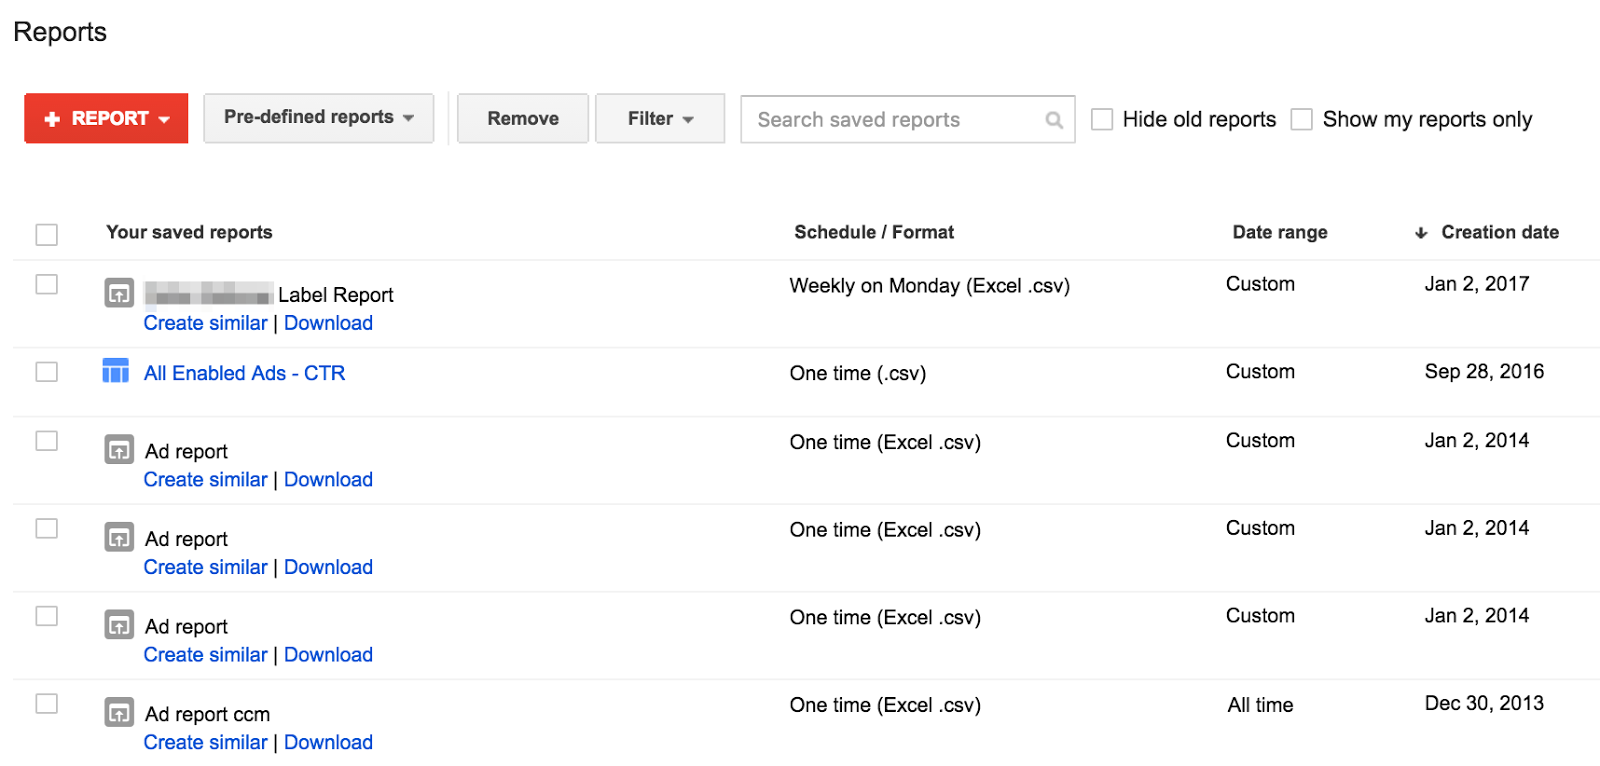 Here's how the reports look.